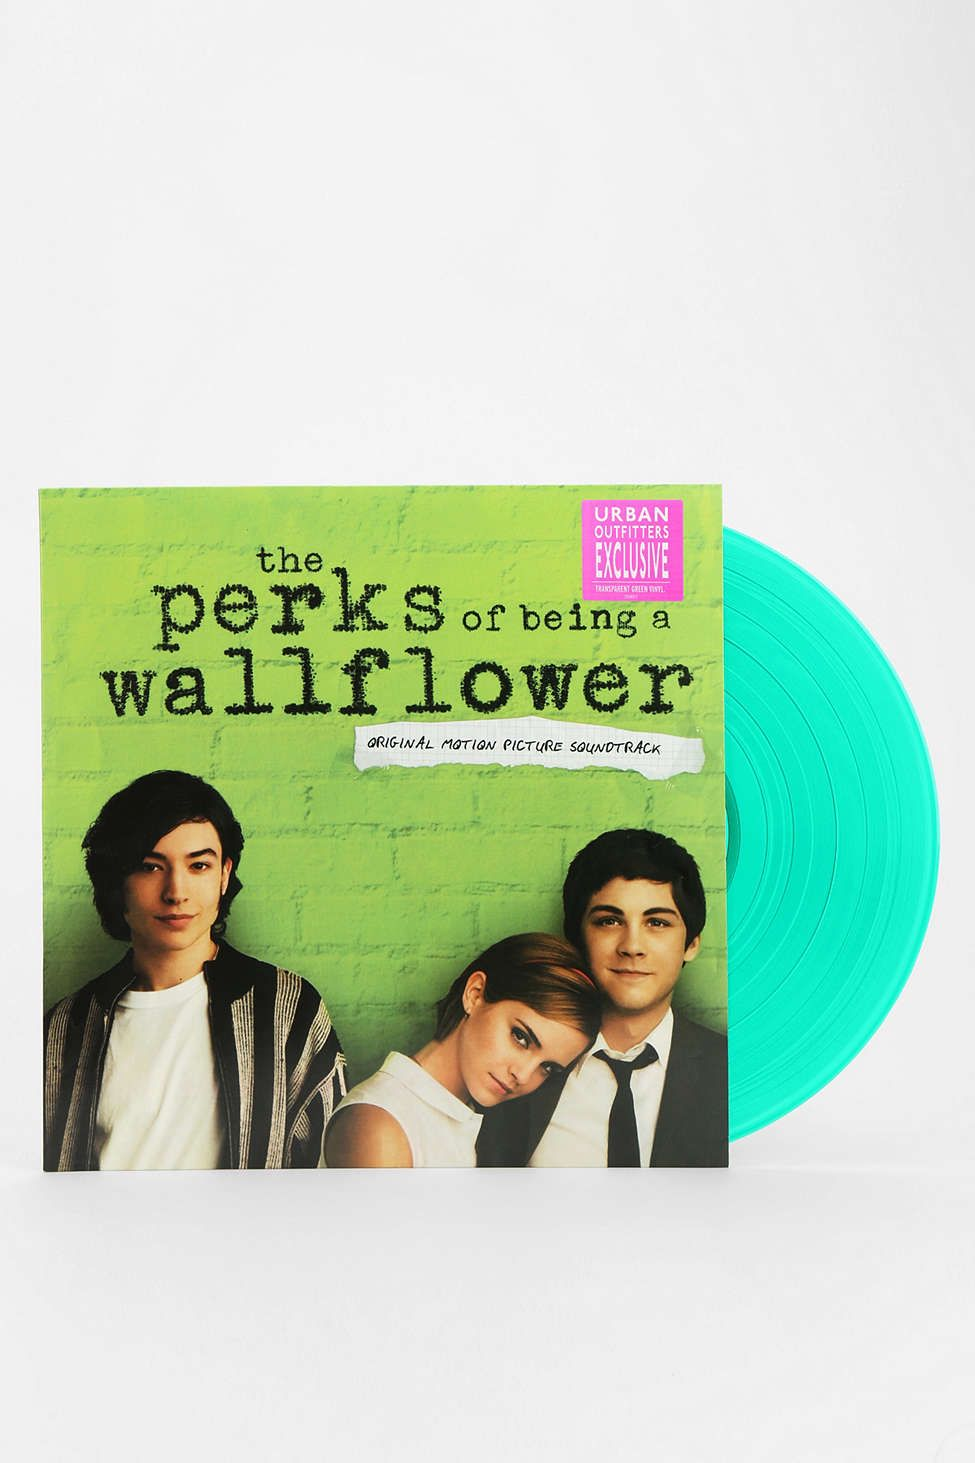 the perk of being a wallflower Download the perks of being a wallflower pdf ebook by american writer stephen chbosky online for free and fall in love with this epistolary novels which is about a teenage boy named charlie who has just joined high school in a pittsburgh suburb.